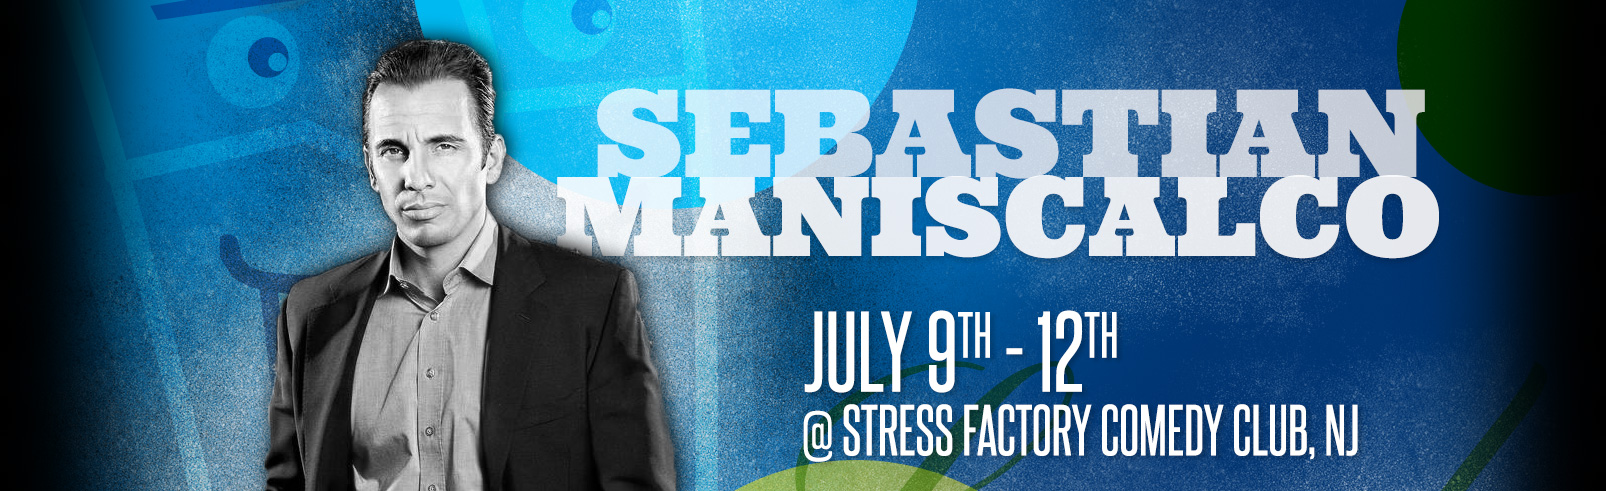 Sebastian Maniscalco @ Stress Factory Comedy Club